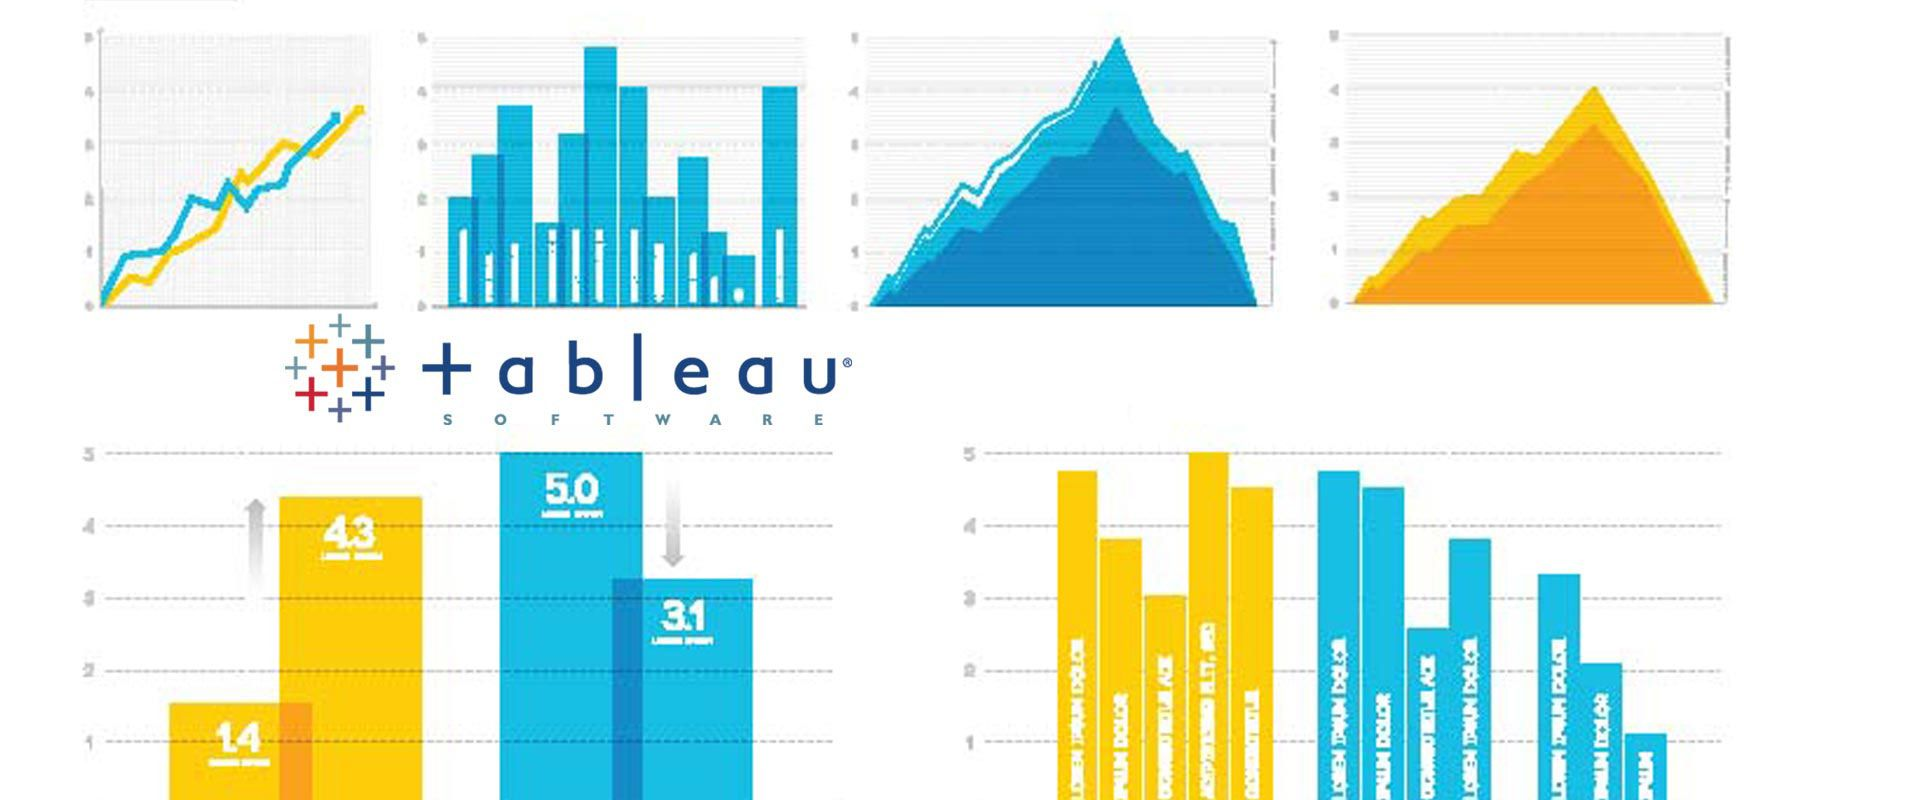 Tableau consulting Company in Houston | Austin | Dallas | San Antonio | Atlanta